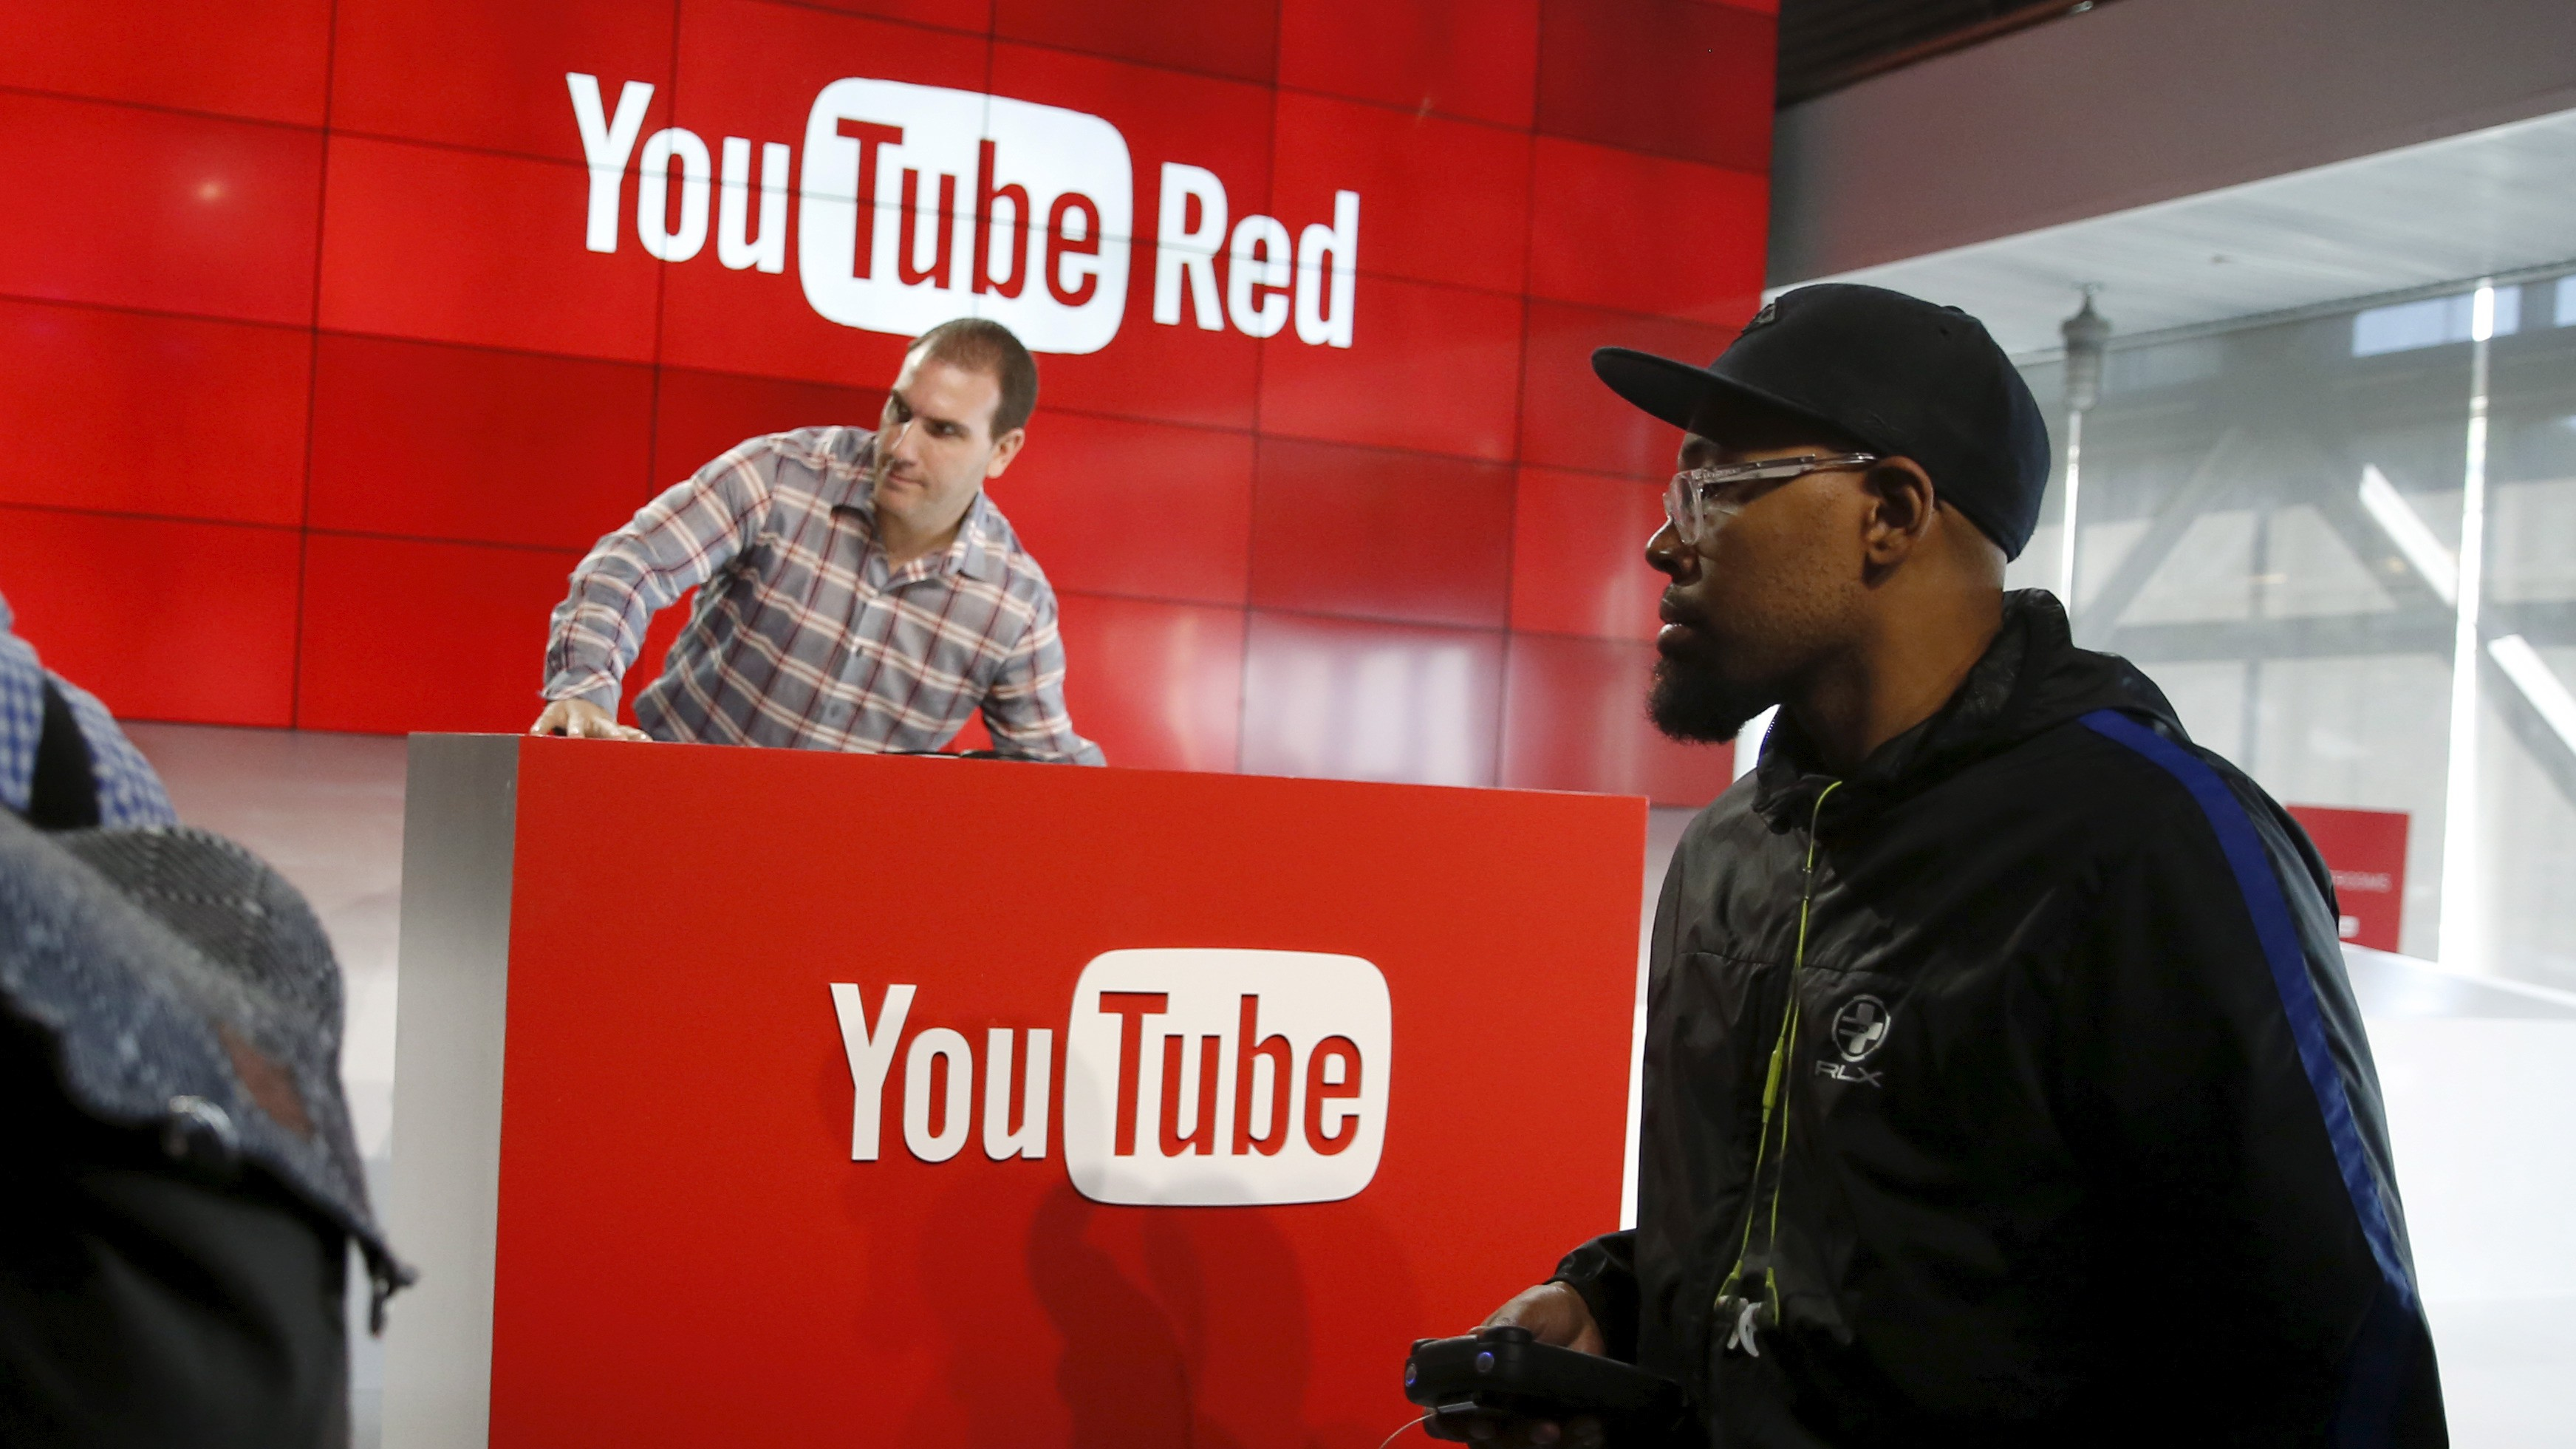 YouTube unveils their new paid subscription service at the YouTube Space LA in Playa Del Rey, Los Angeles, California, United States October 21, 2015. Alphabet Inc's YouTube will launch a $10-a-month subscription option in the United States on October 28 that lets viewers watch videos from across the site without interruption from advertisements, the company said on Wednesday.  REUTERS/Lucy Nicholson - RTS5IG2